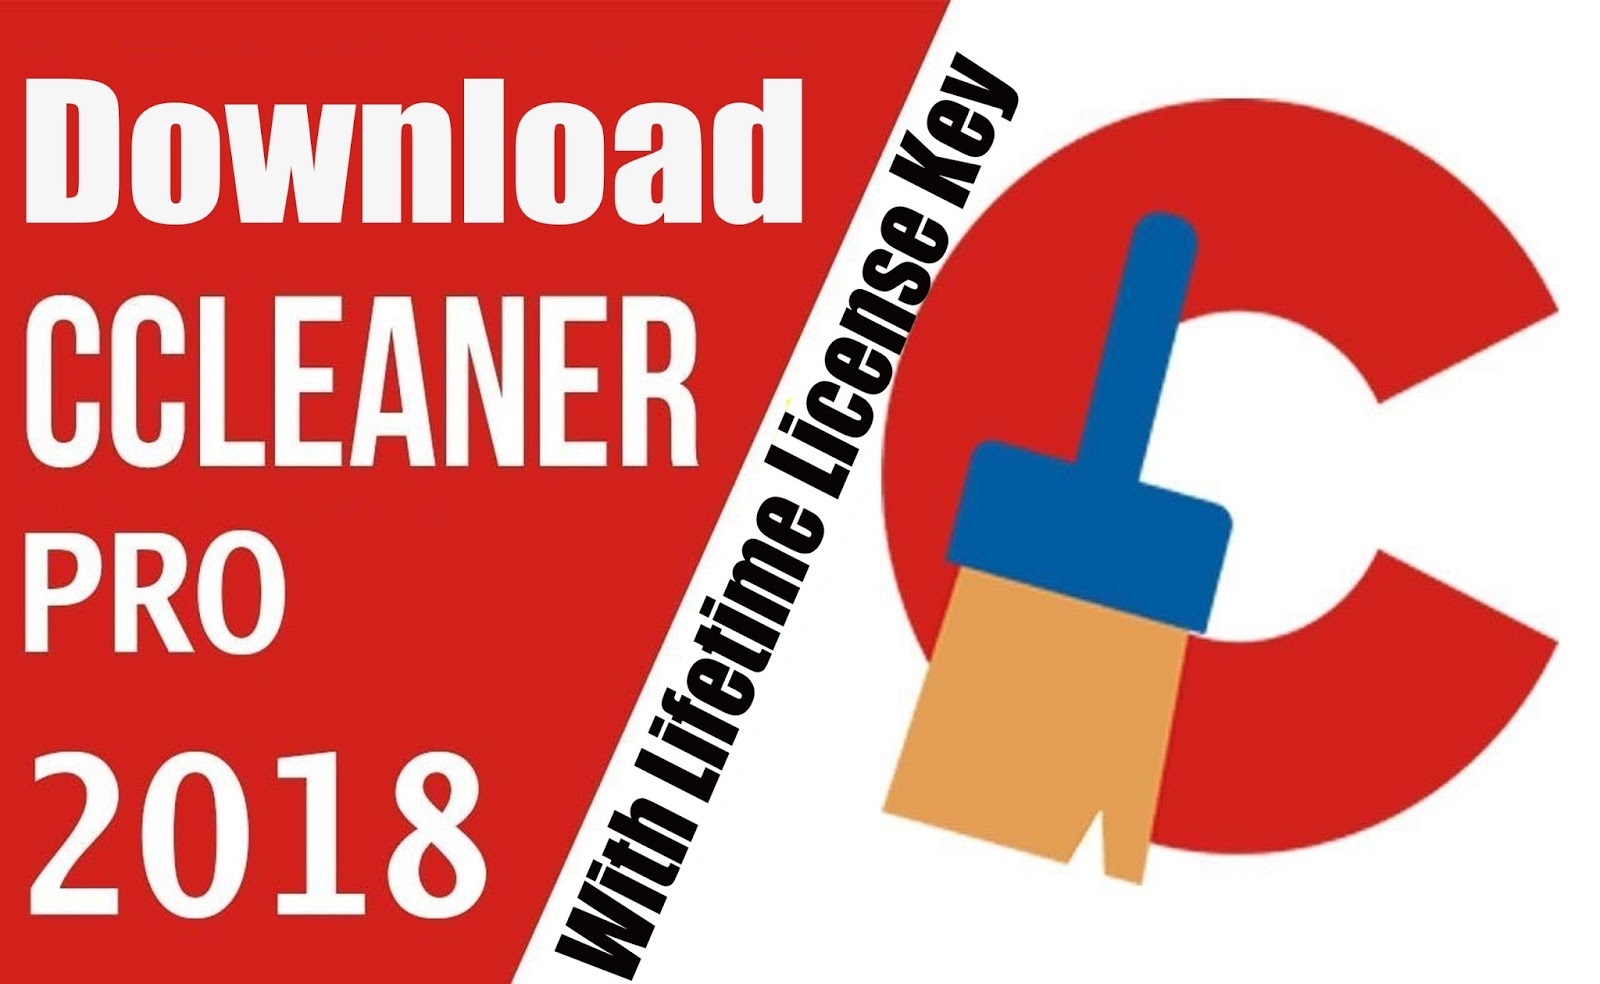 CCleaner Pro 5.36.6278 Serial Key Crack 2018 Full Version ...